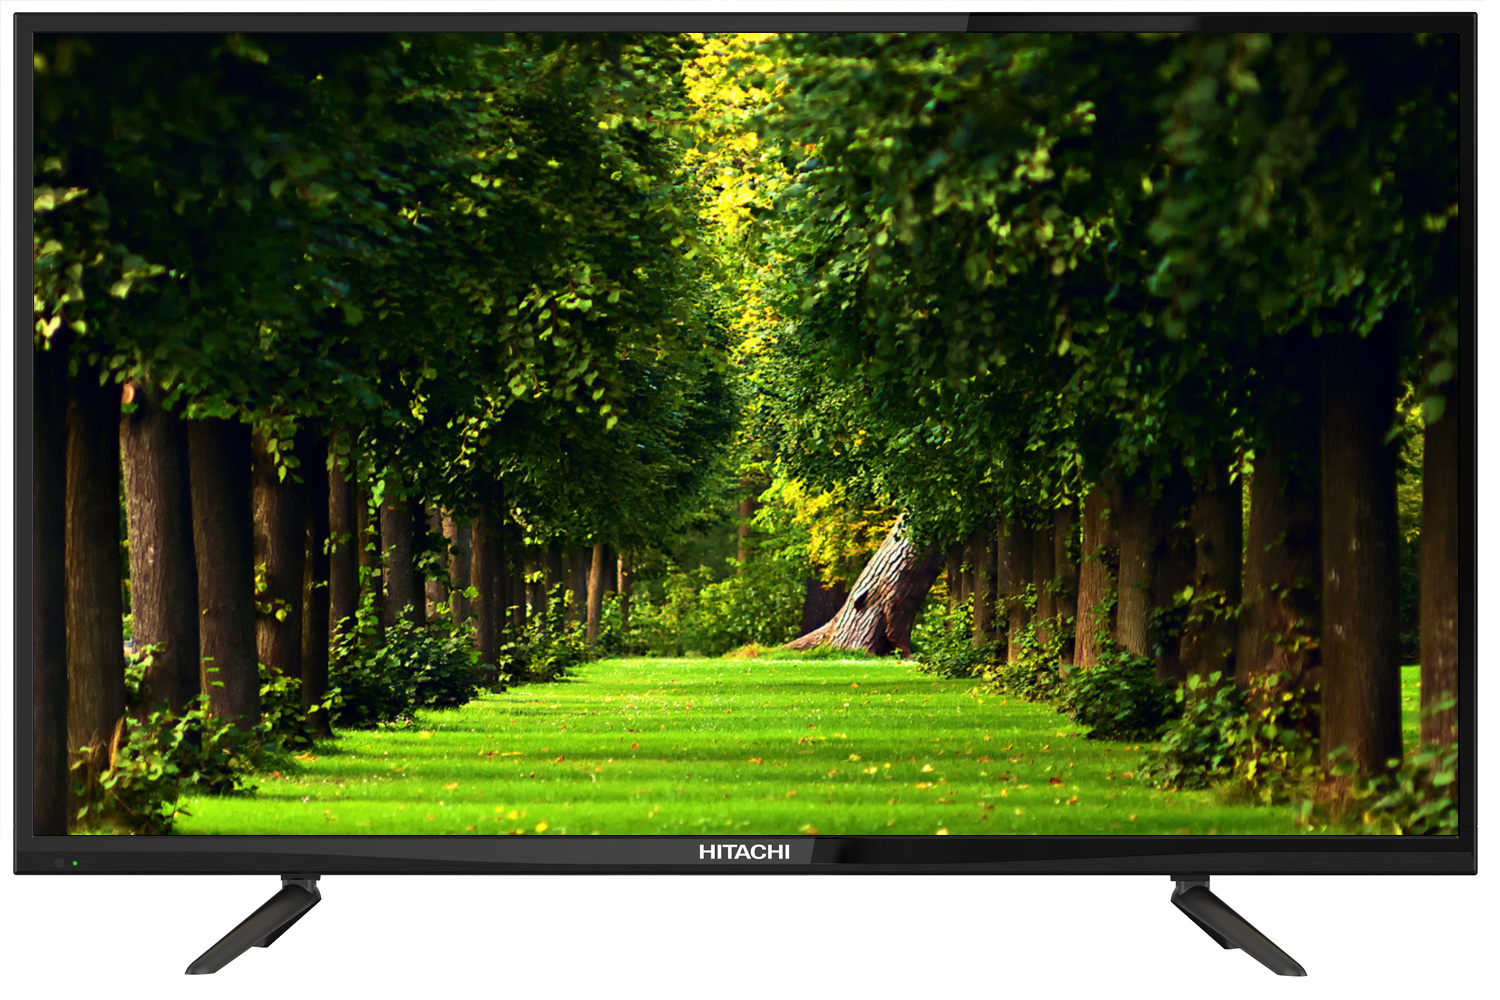 Hitachi LED TV HD Ready  H-LD32SY